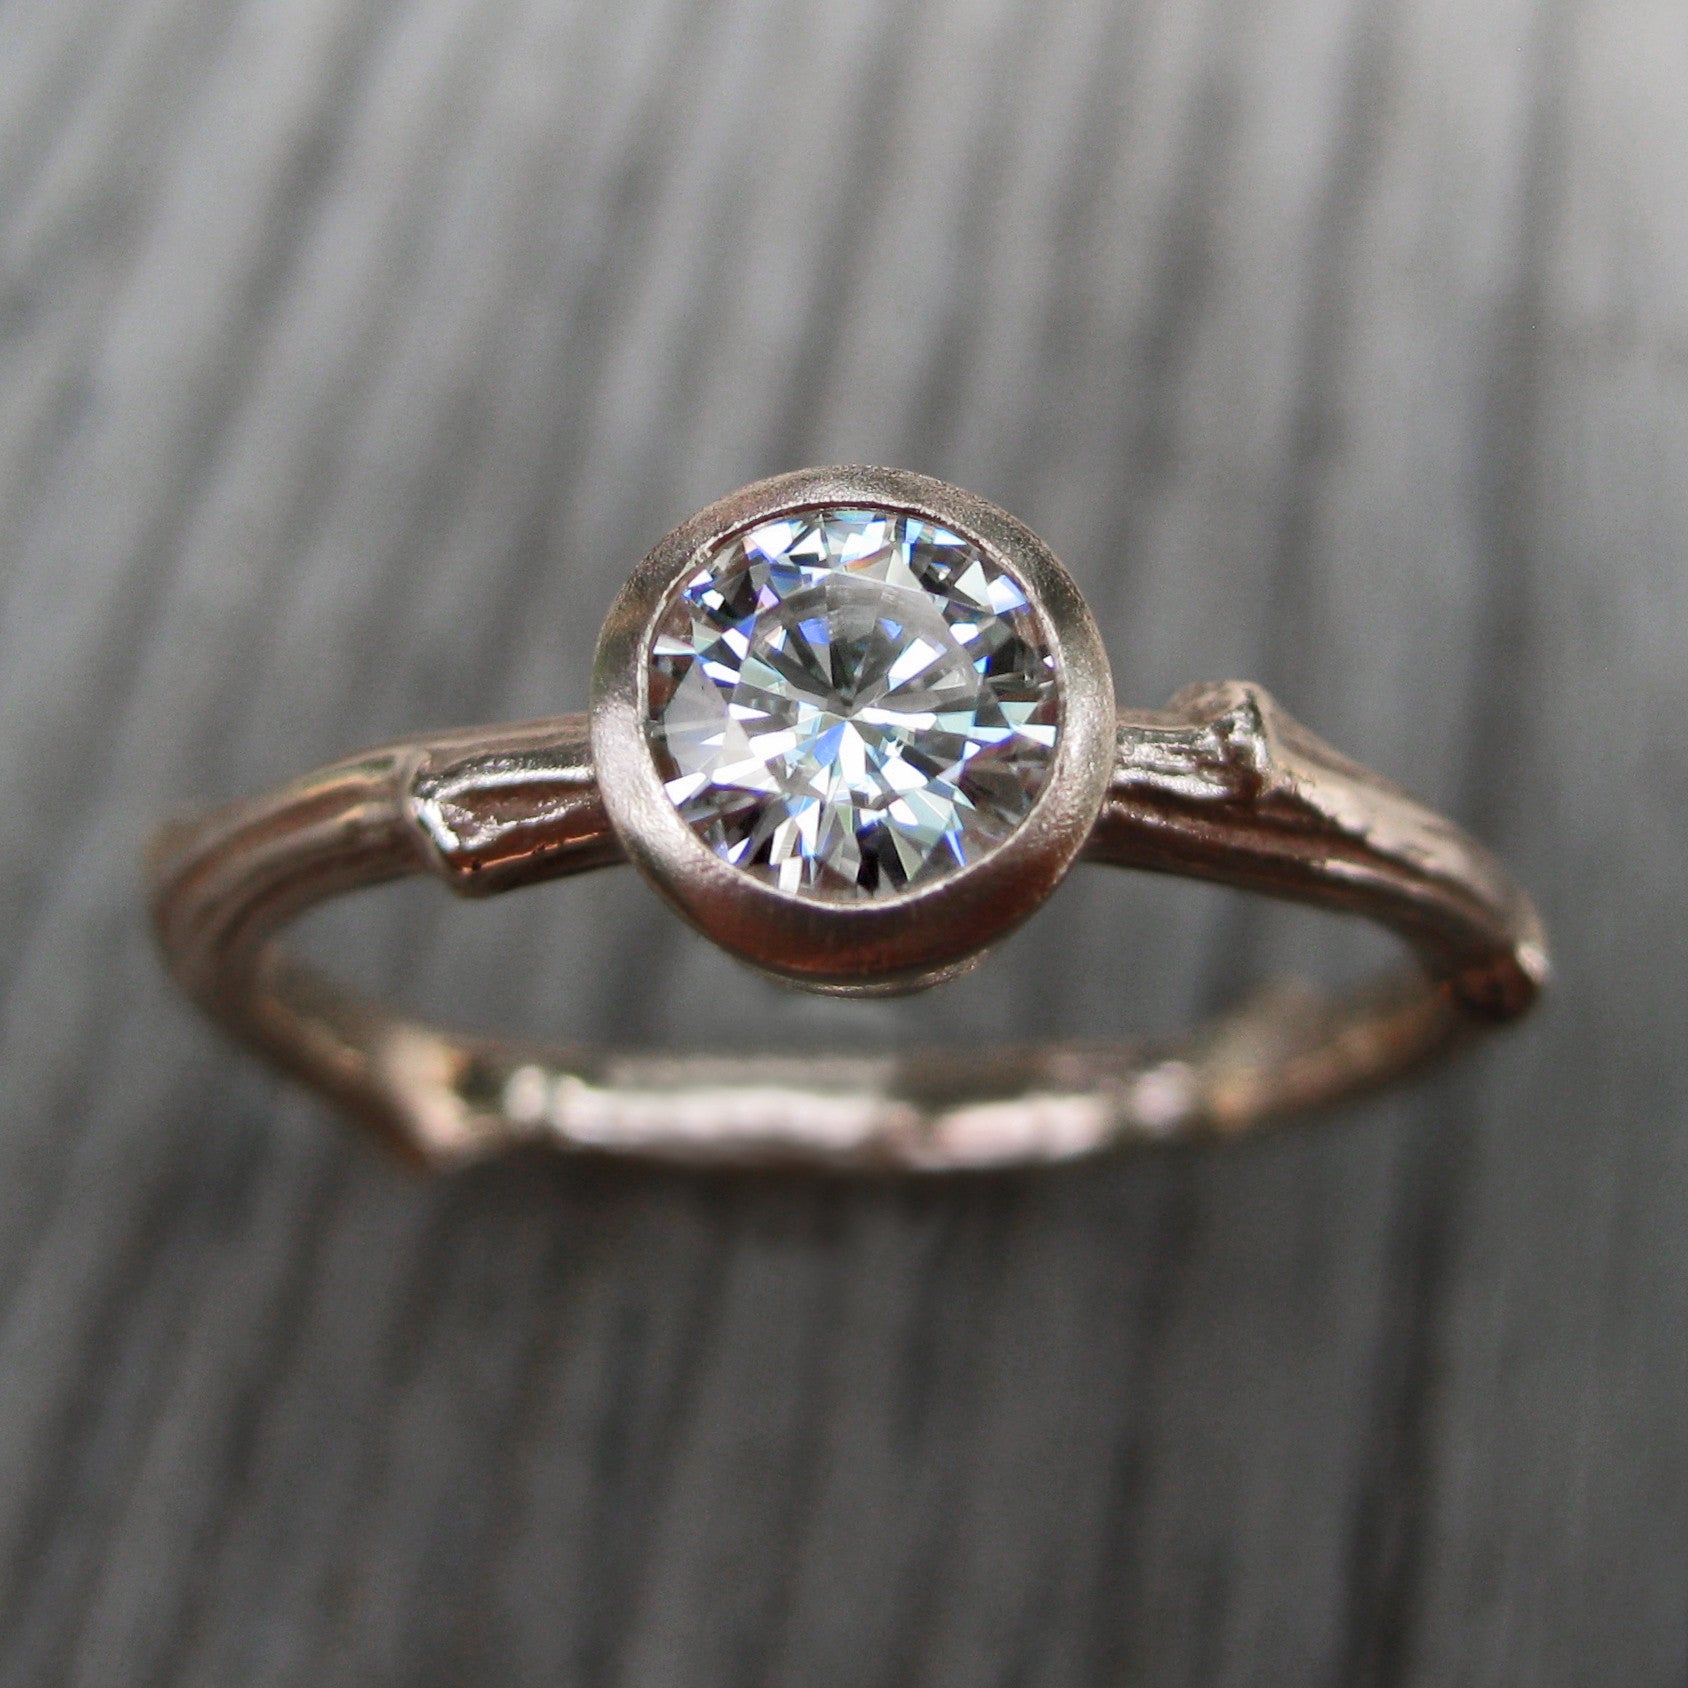 rings beautiful kristincoffin by fullxfull moissanite il engagement etsy kyef rose twig sale emerald ring